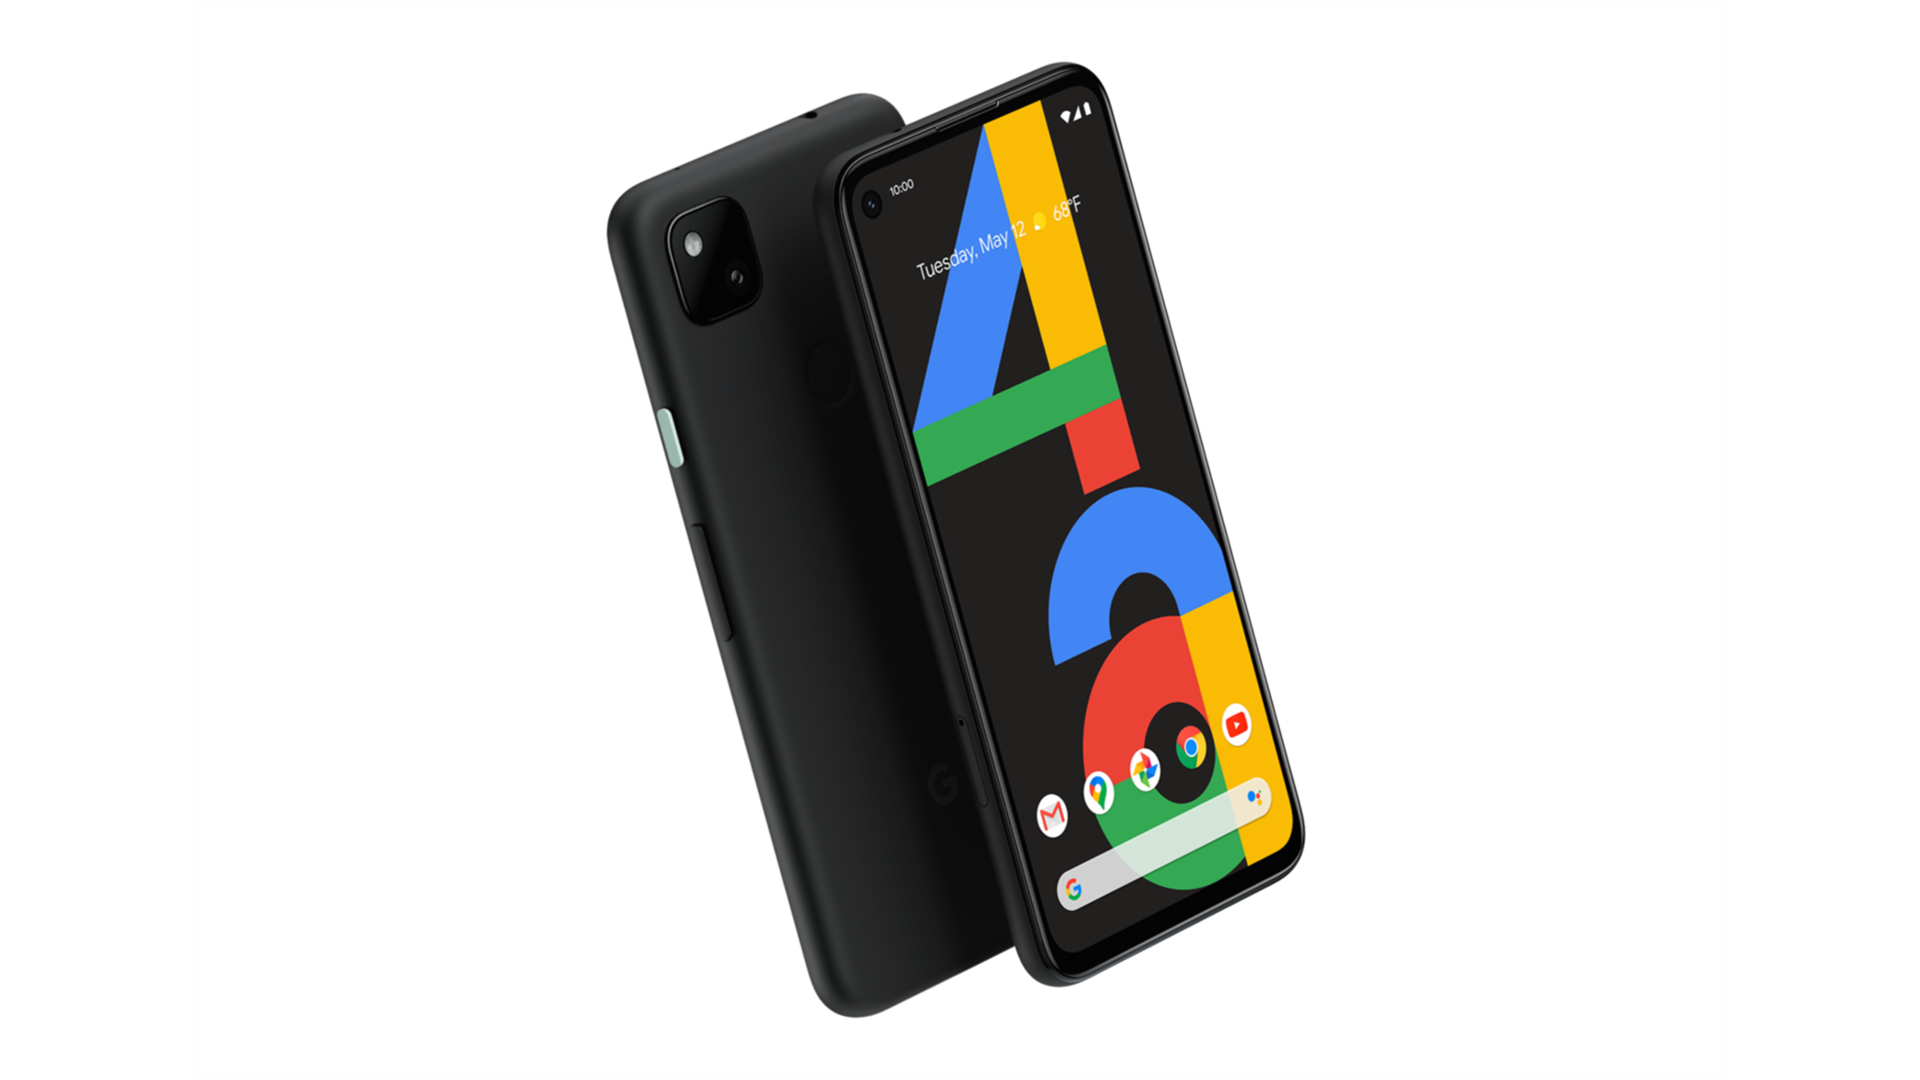 The Google Pixel 4a